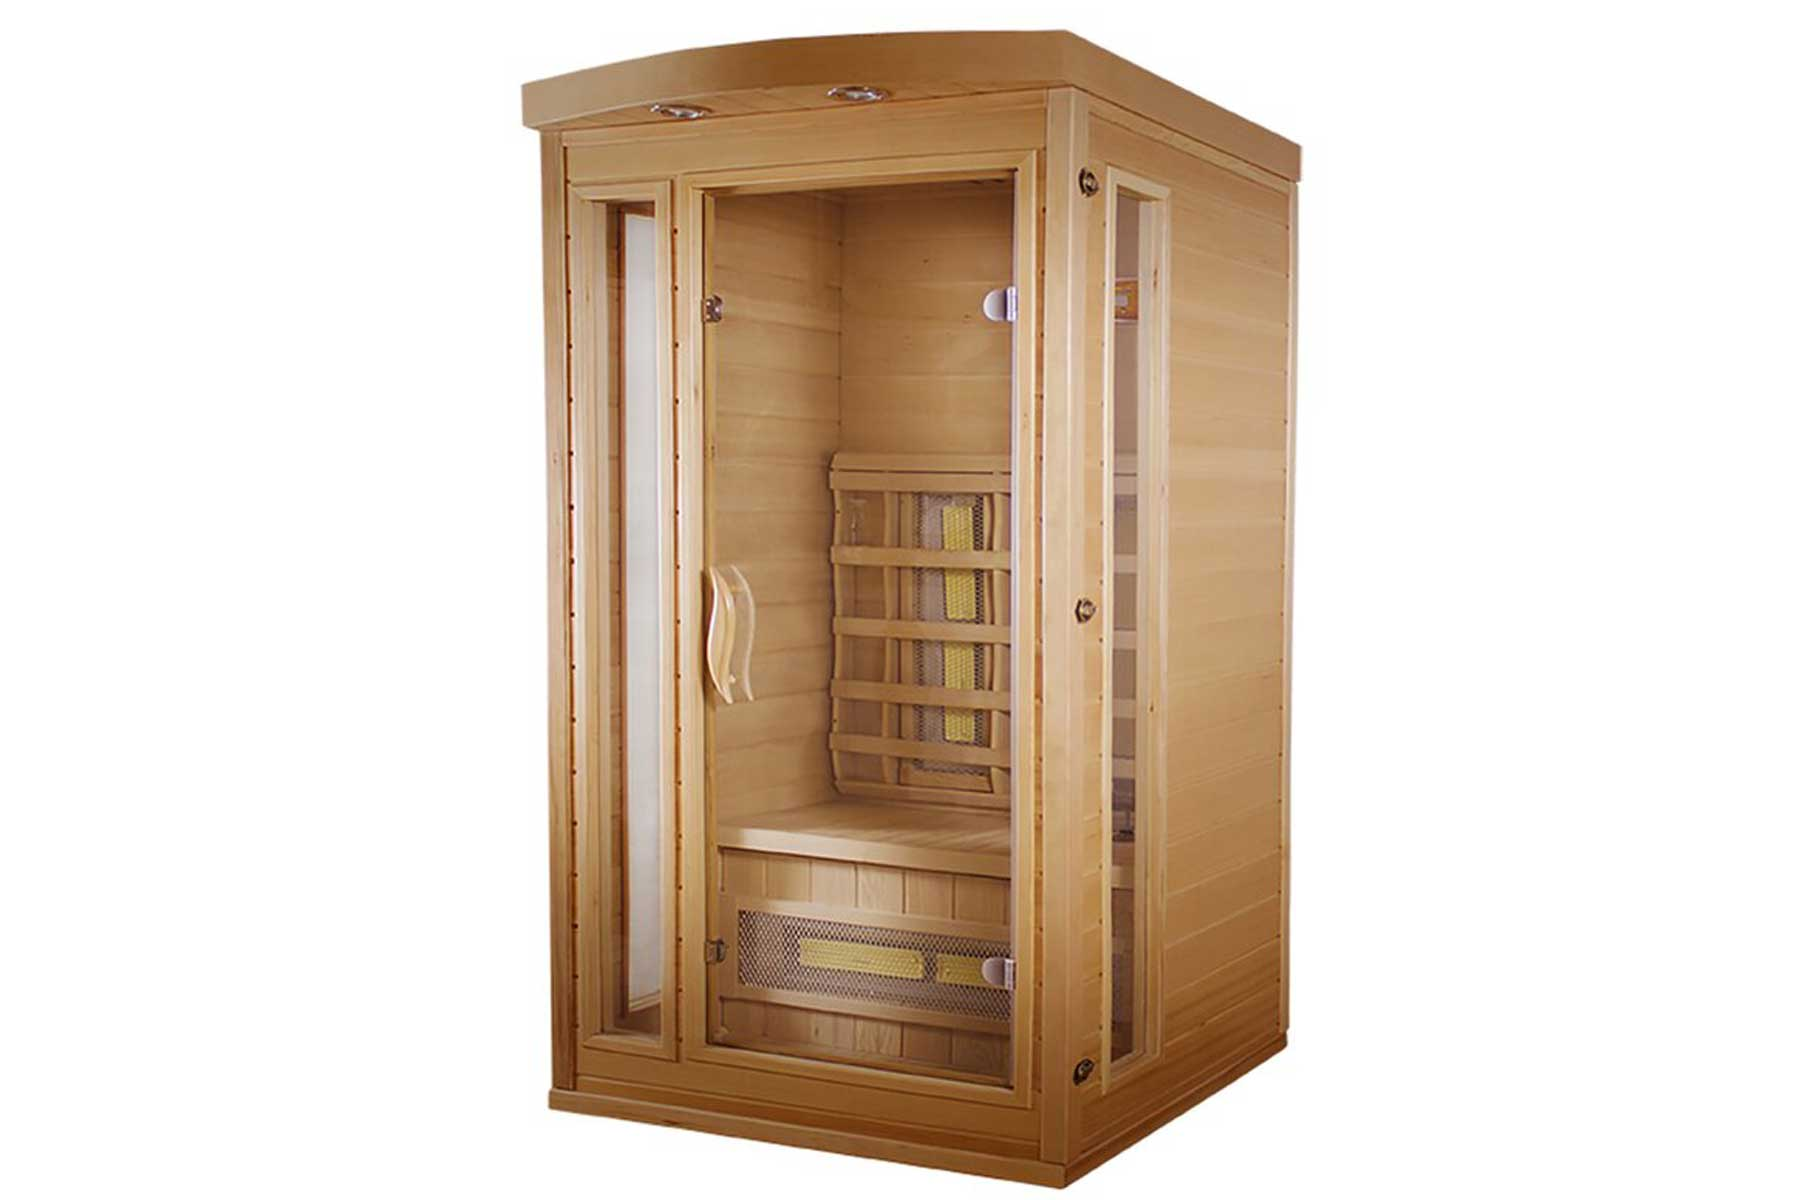 TheraSauna Classic 1 Person FAR Infrared Sauna with Soft Touch Control